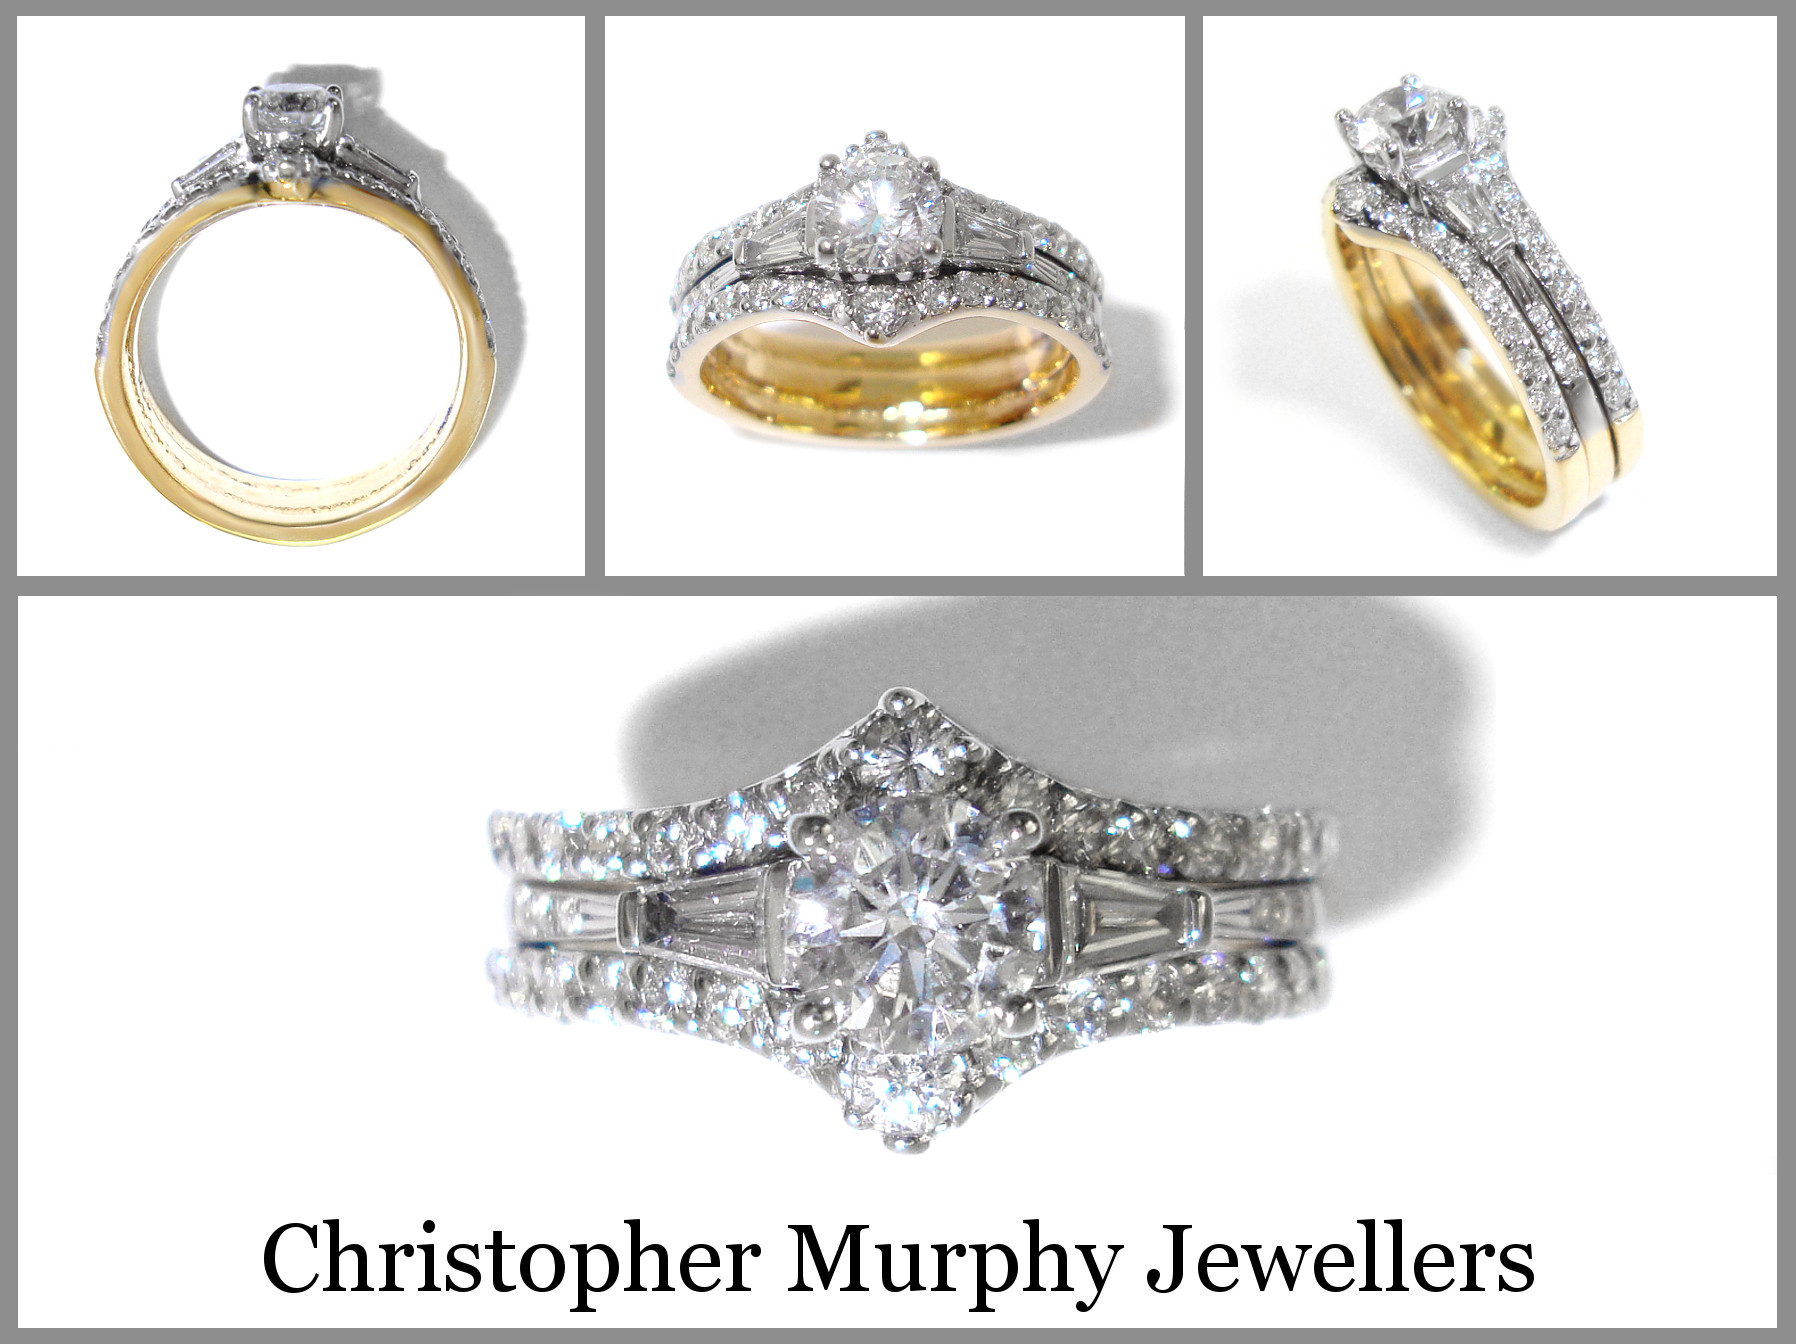 Double Wedding Ring 186 Christopher Murphy Jewellers